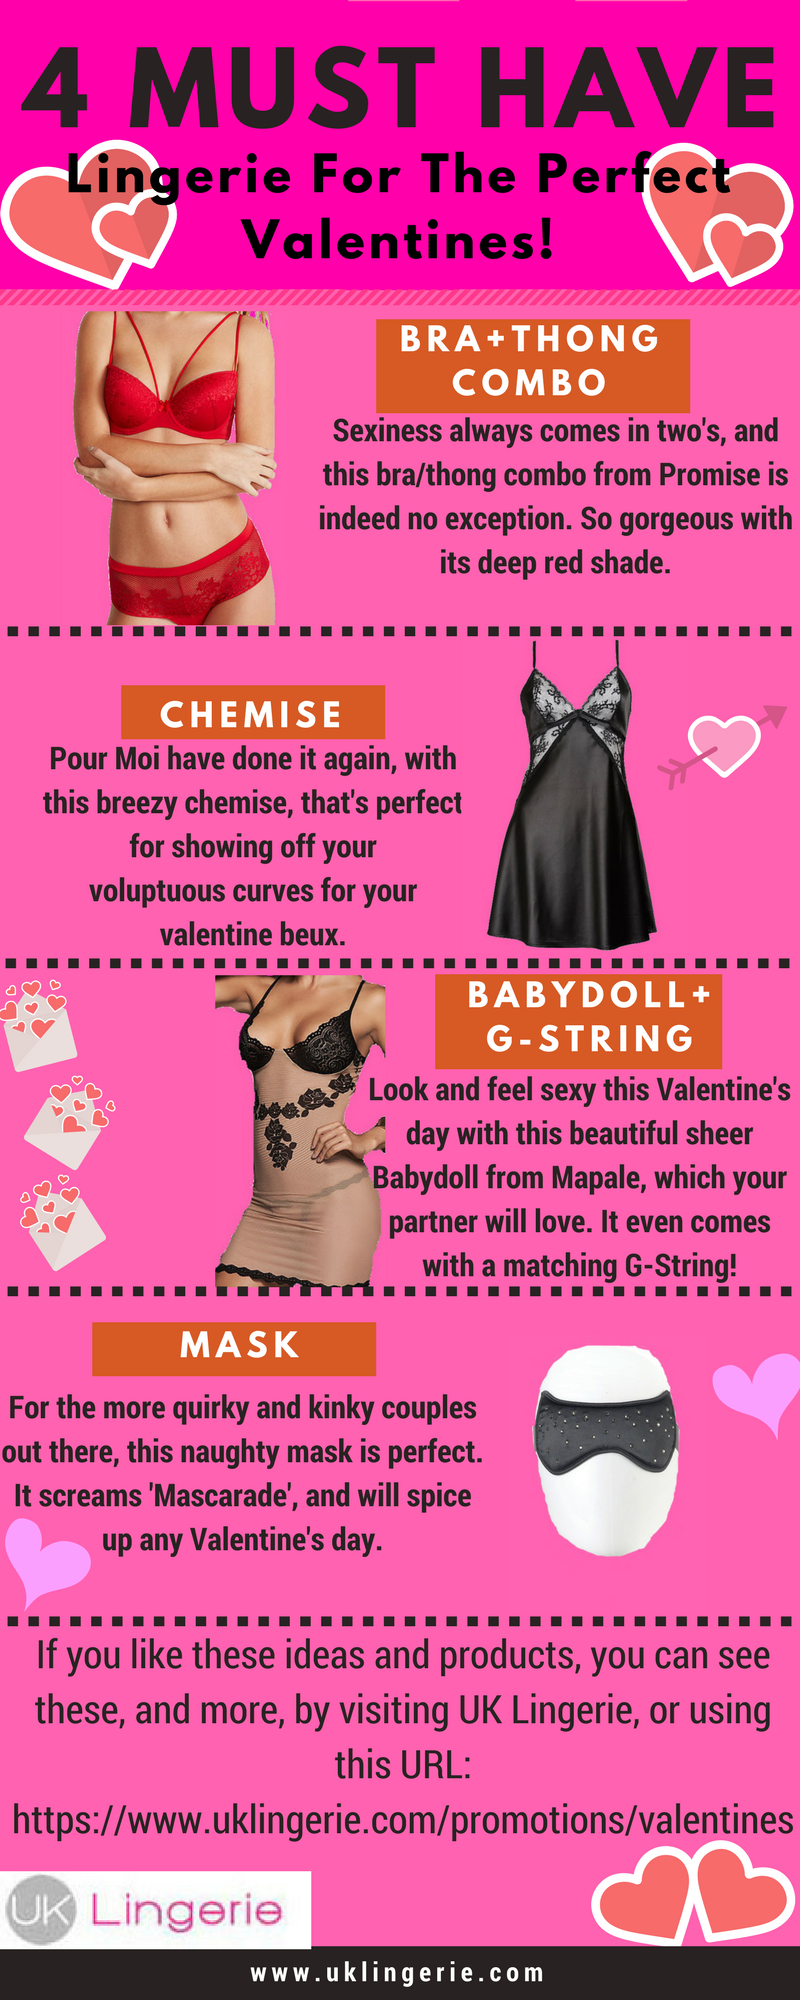 4 Must Have Lingerie For The Perfect Valentines